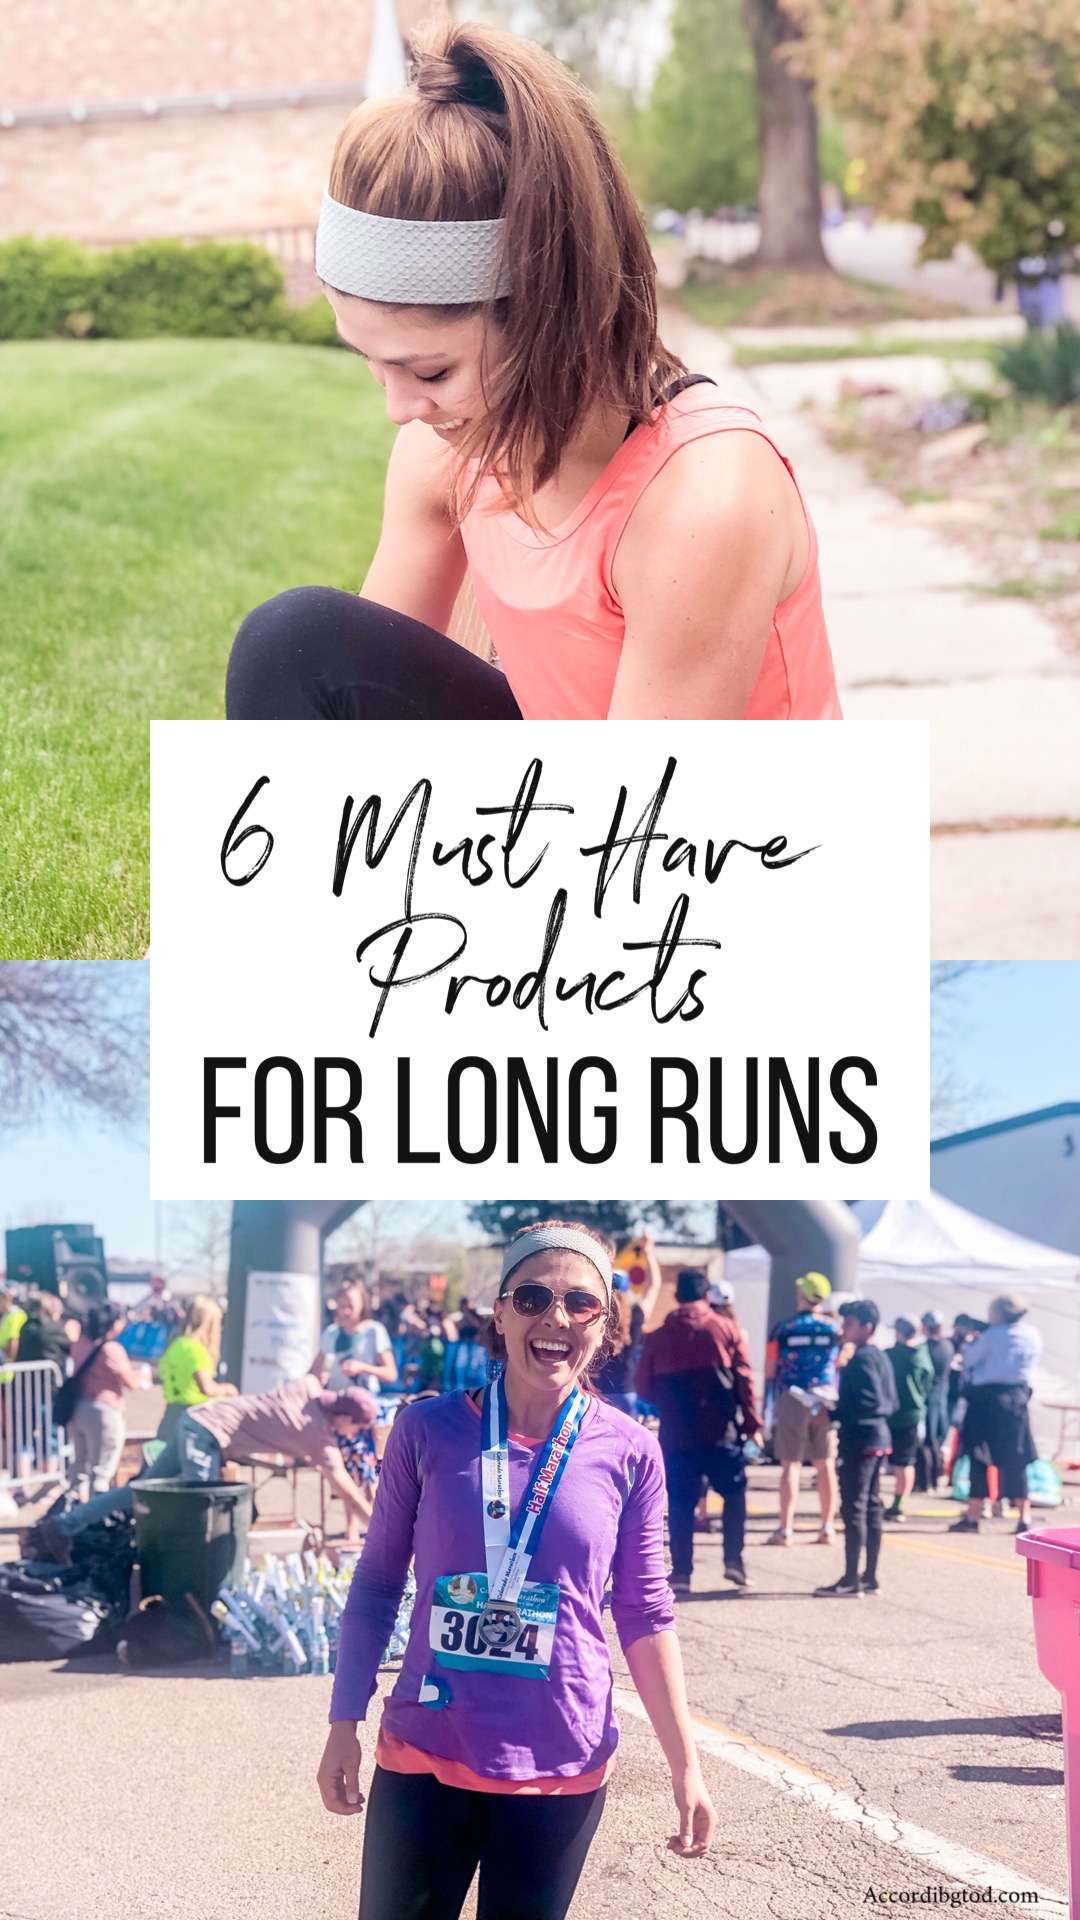 6 must have products for long runs